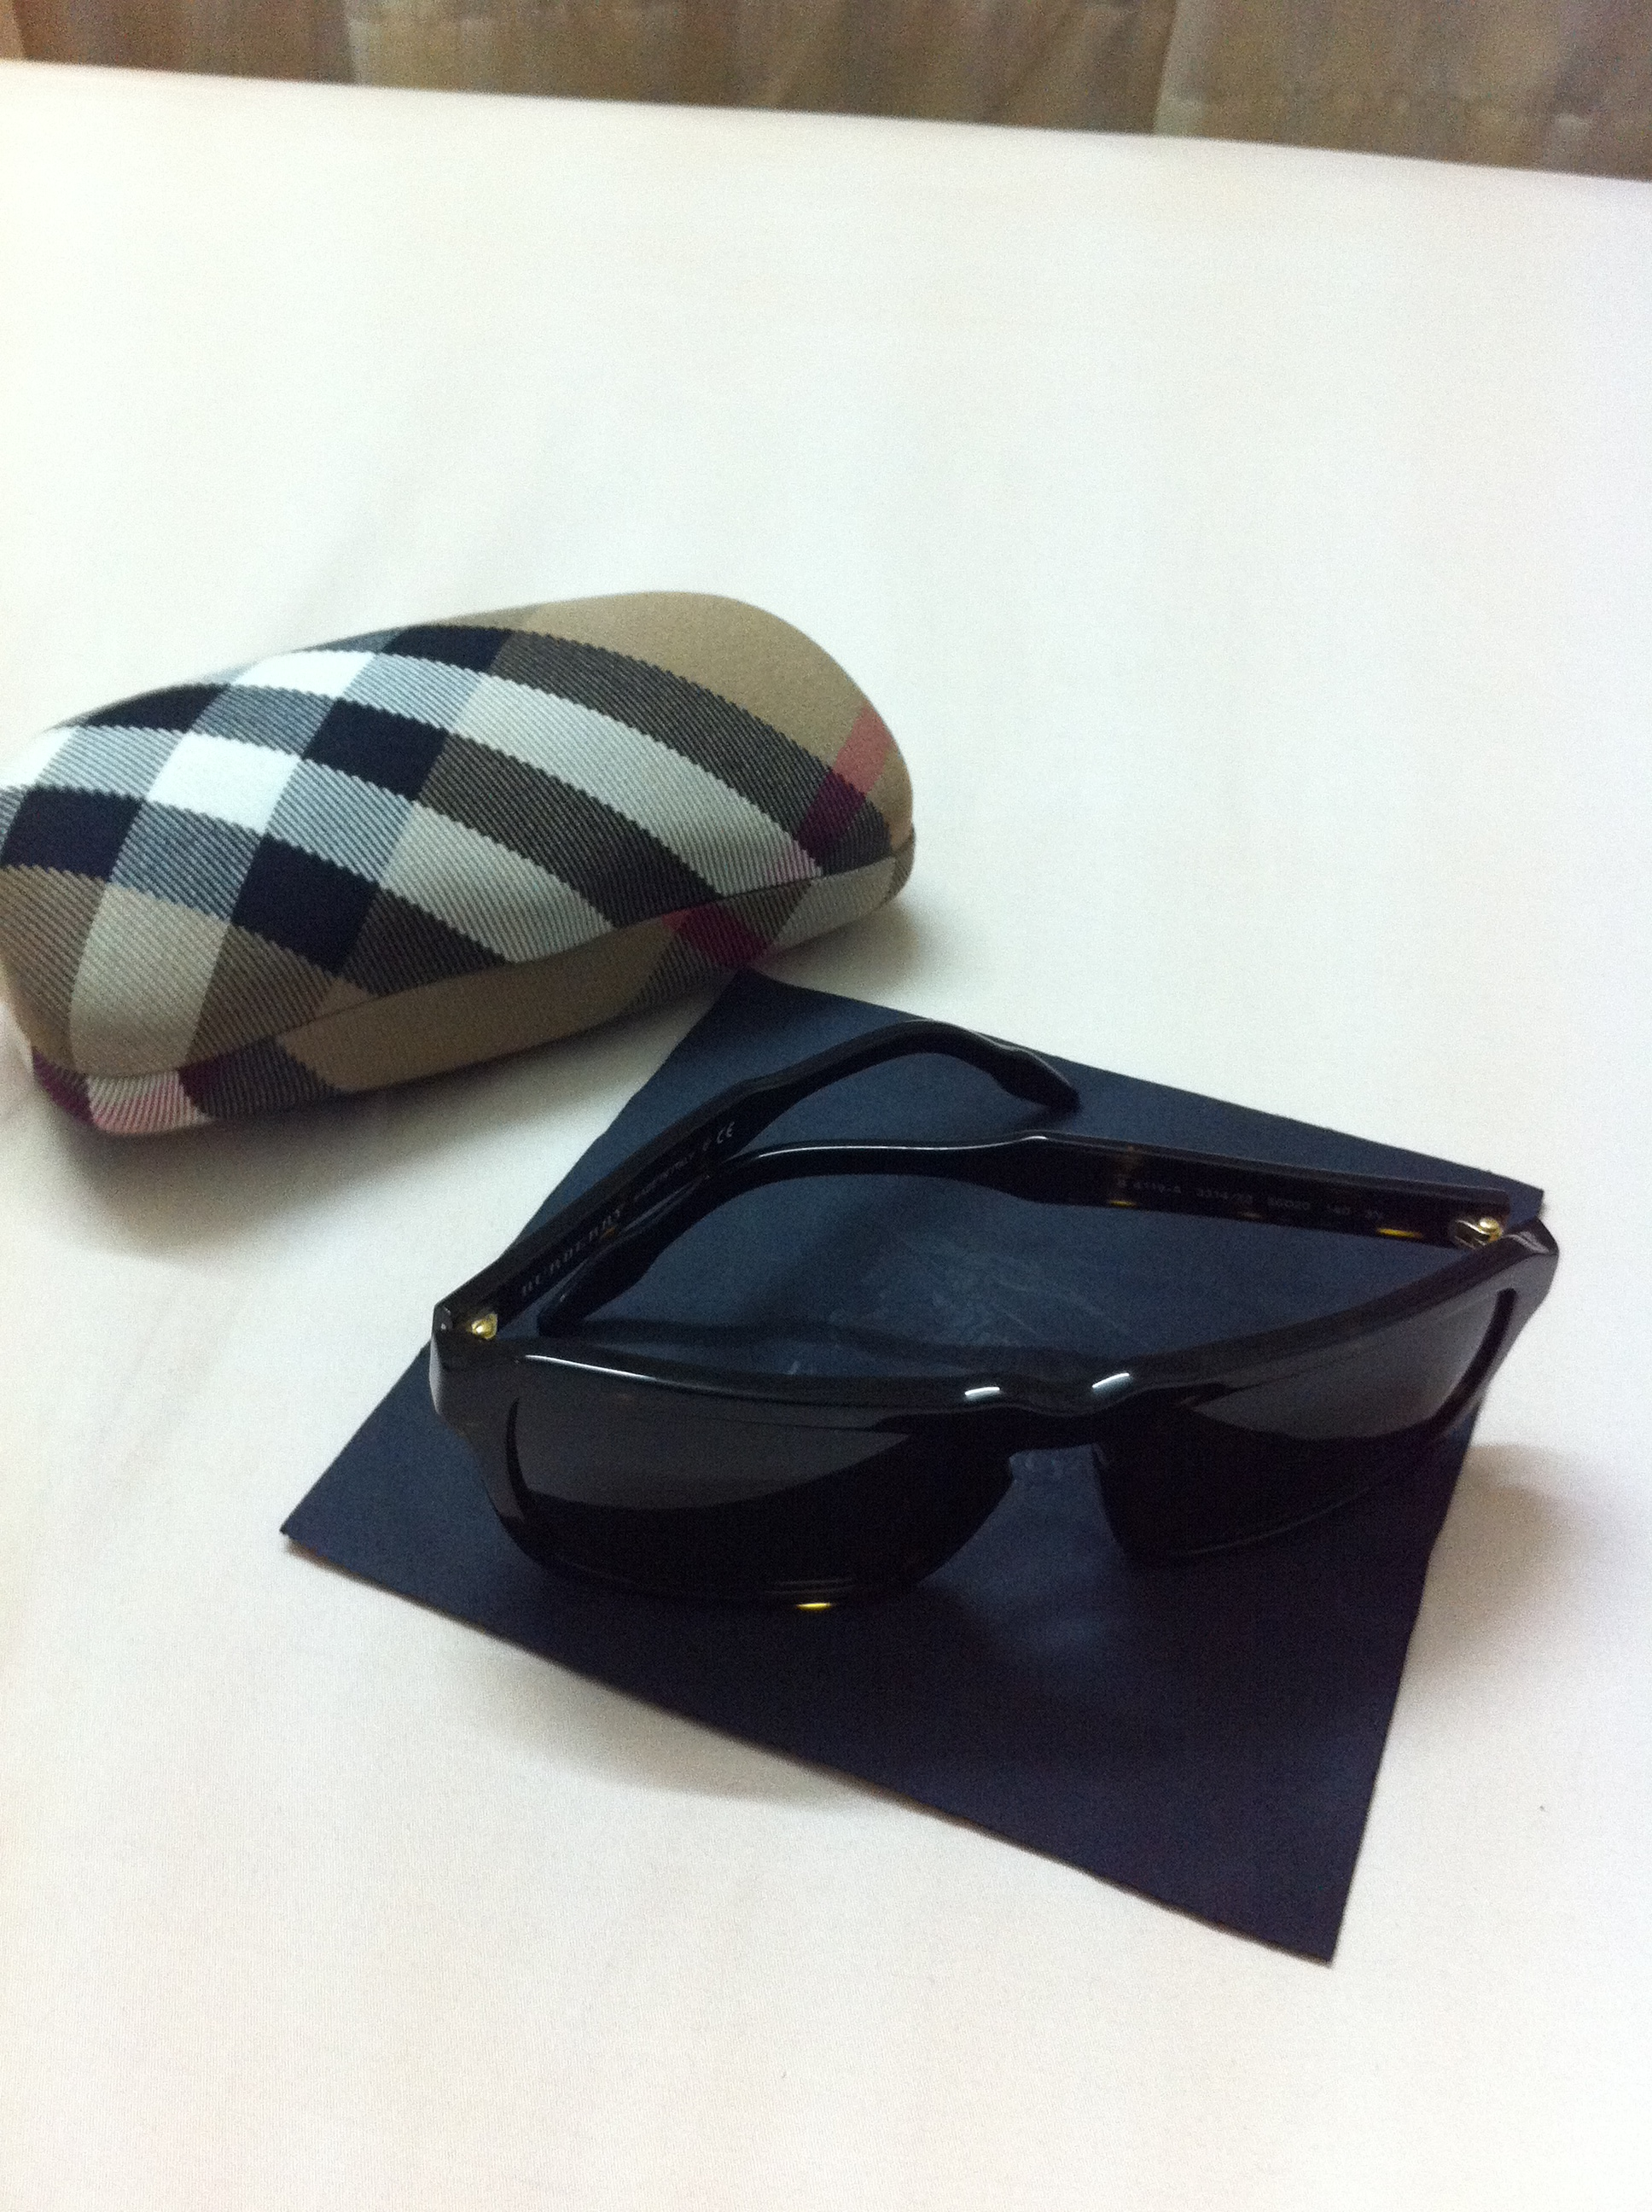 FOR SALE: Burberry Sunglasses